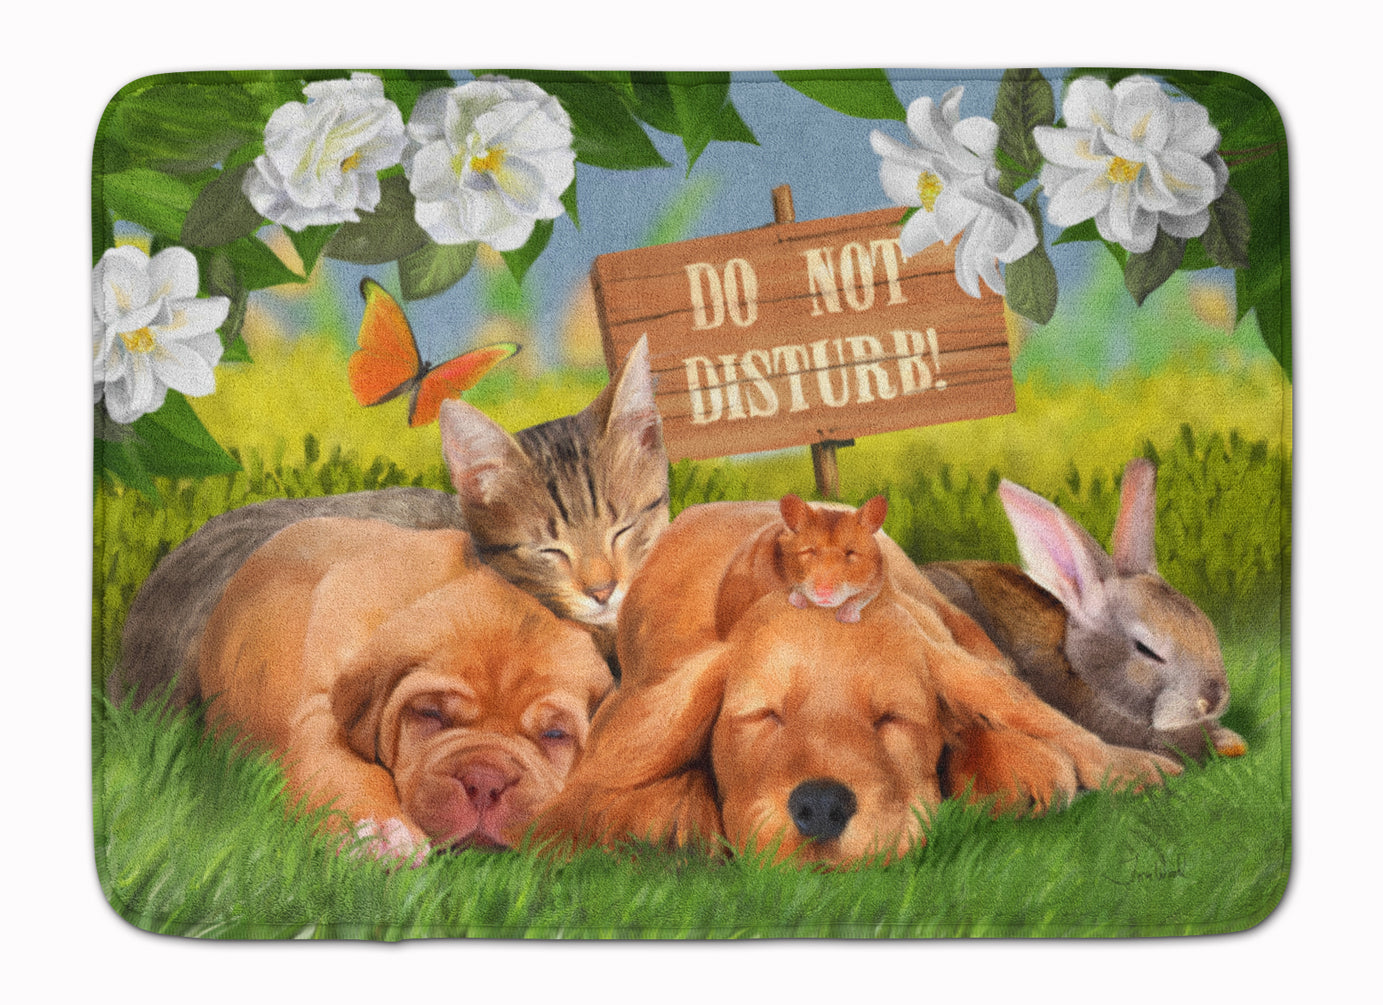 Golden Retriever and Sharpei Do Not Disturb Machine Washable Memory Foam Mat PTW2048RUG by Caroline's Treasures